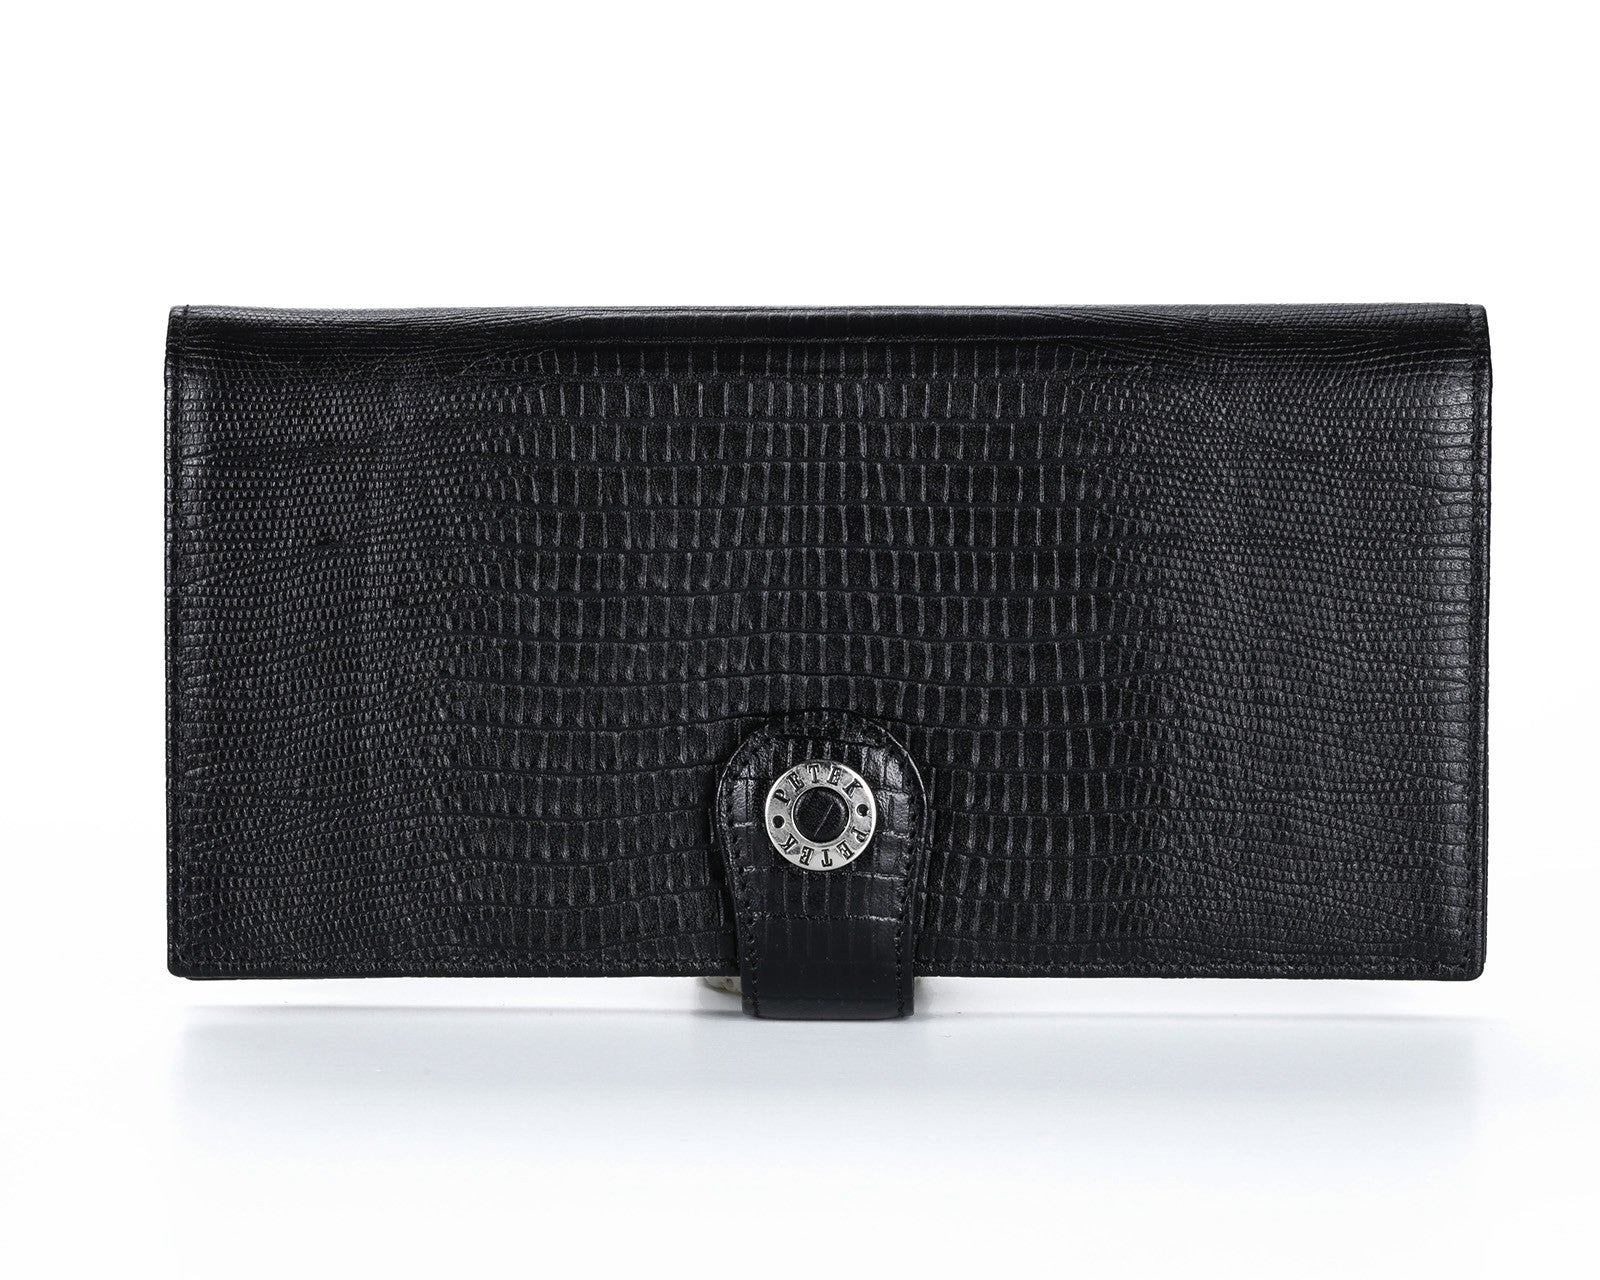 441 Crocodile Black, Petek 1855 Women's Leather Wallet